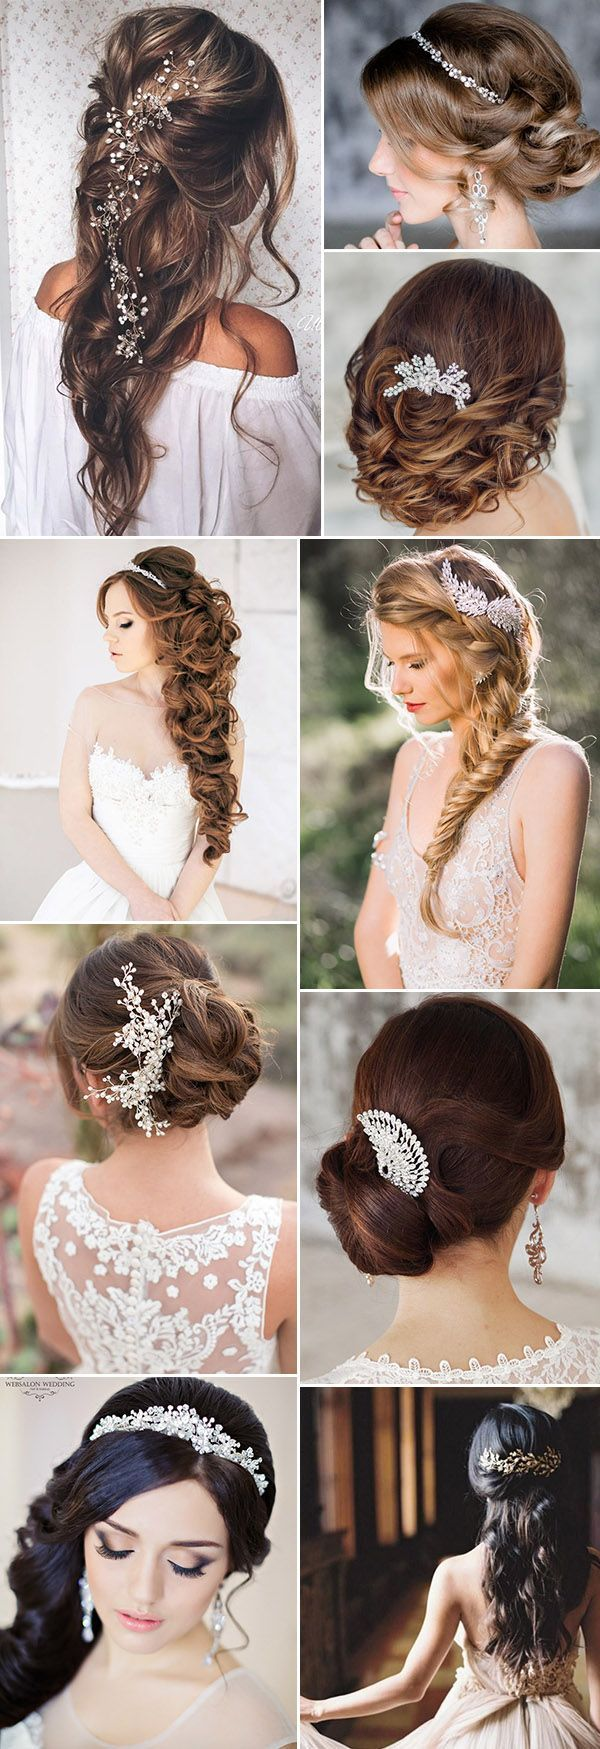 These wedding hairstyles are gorgeous!